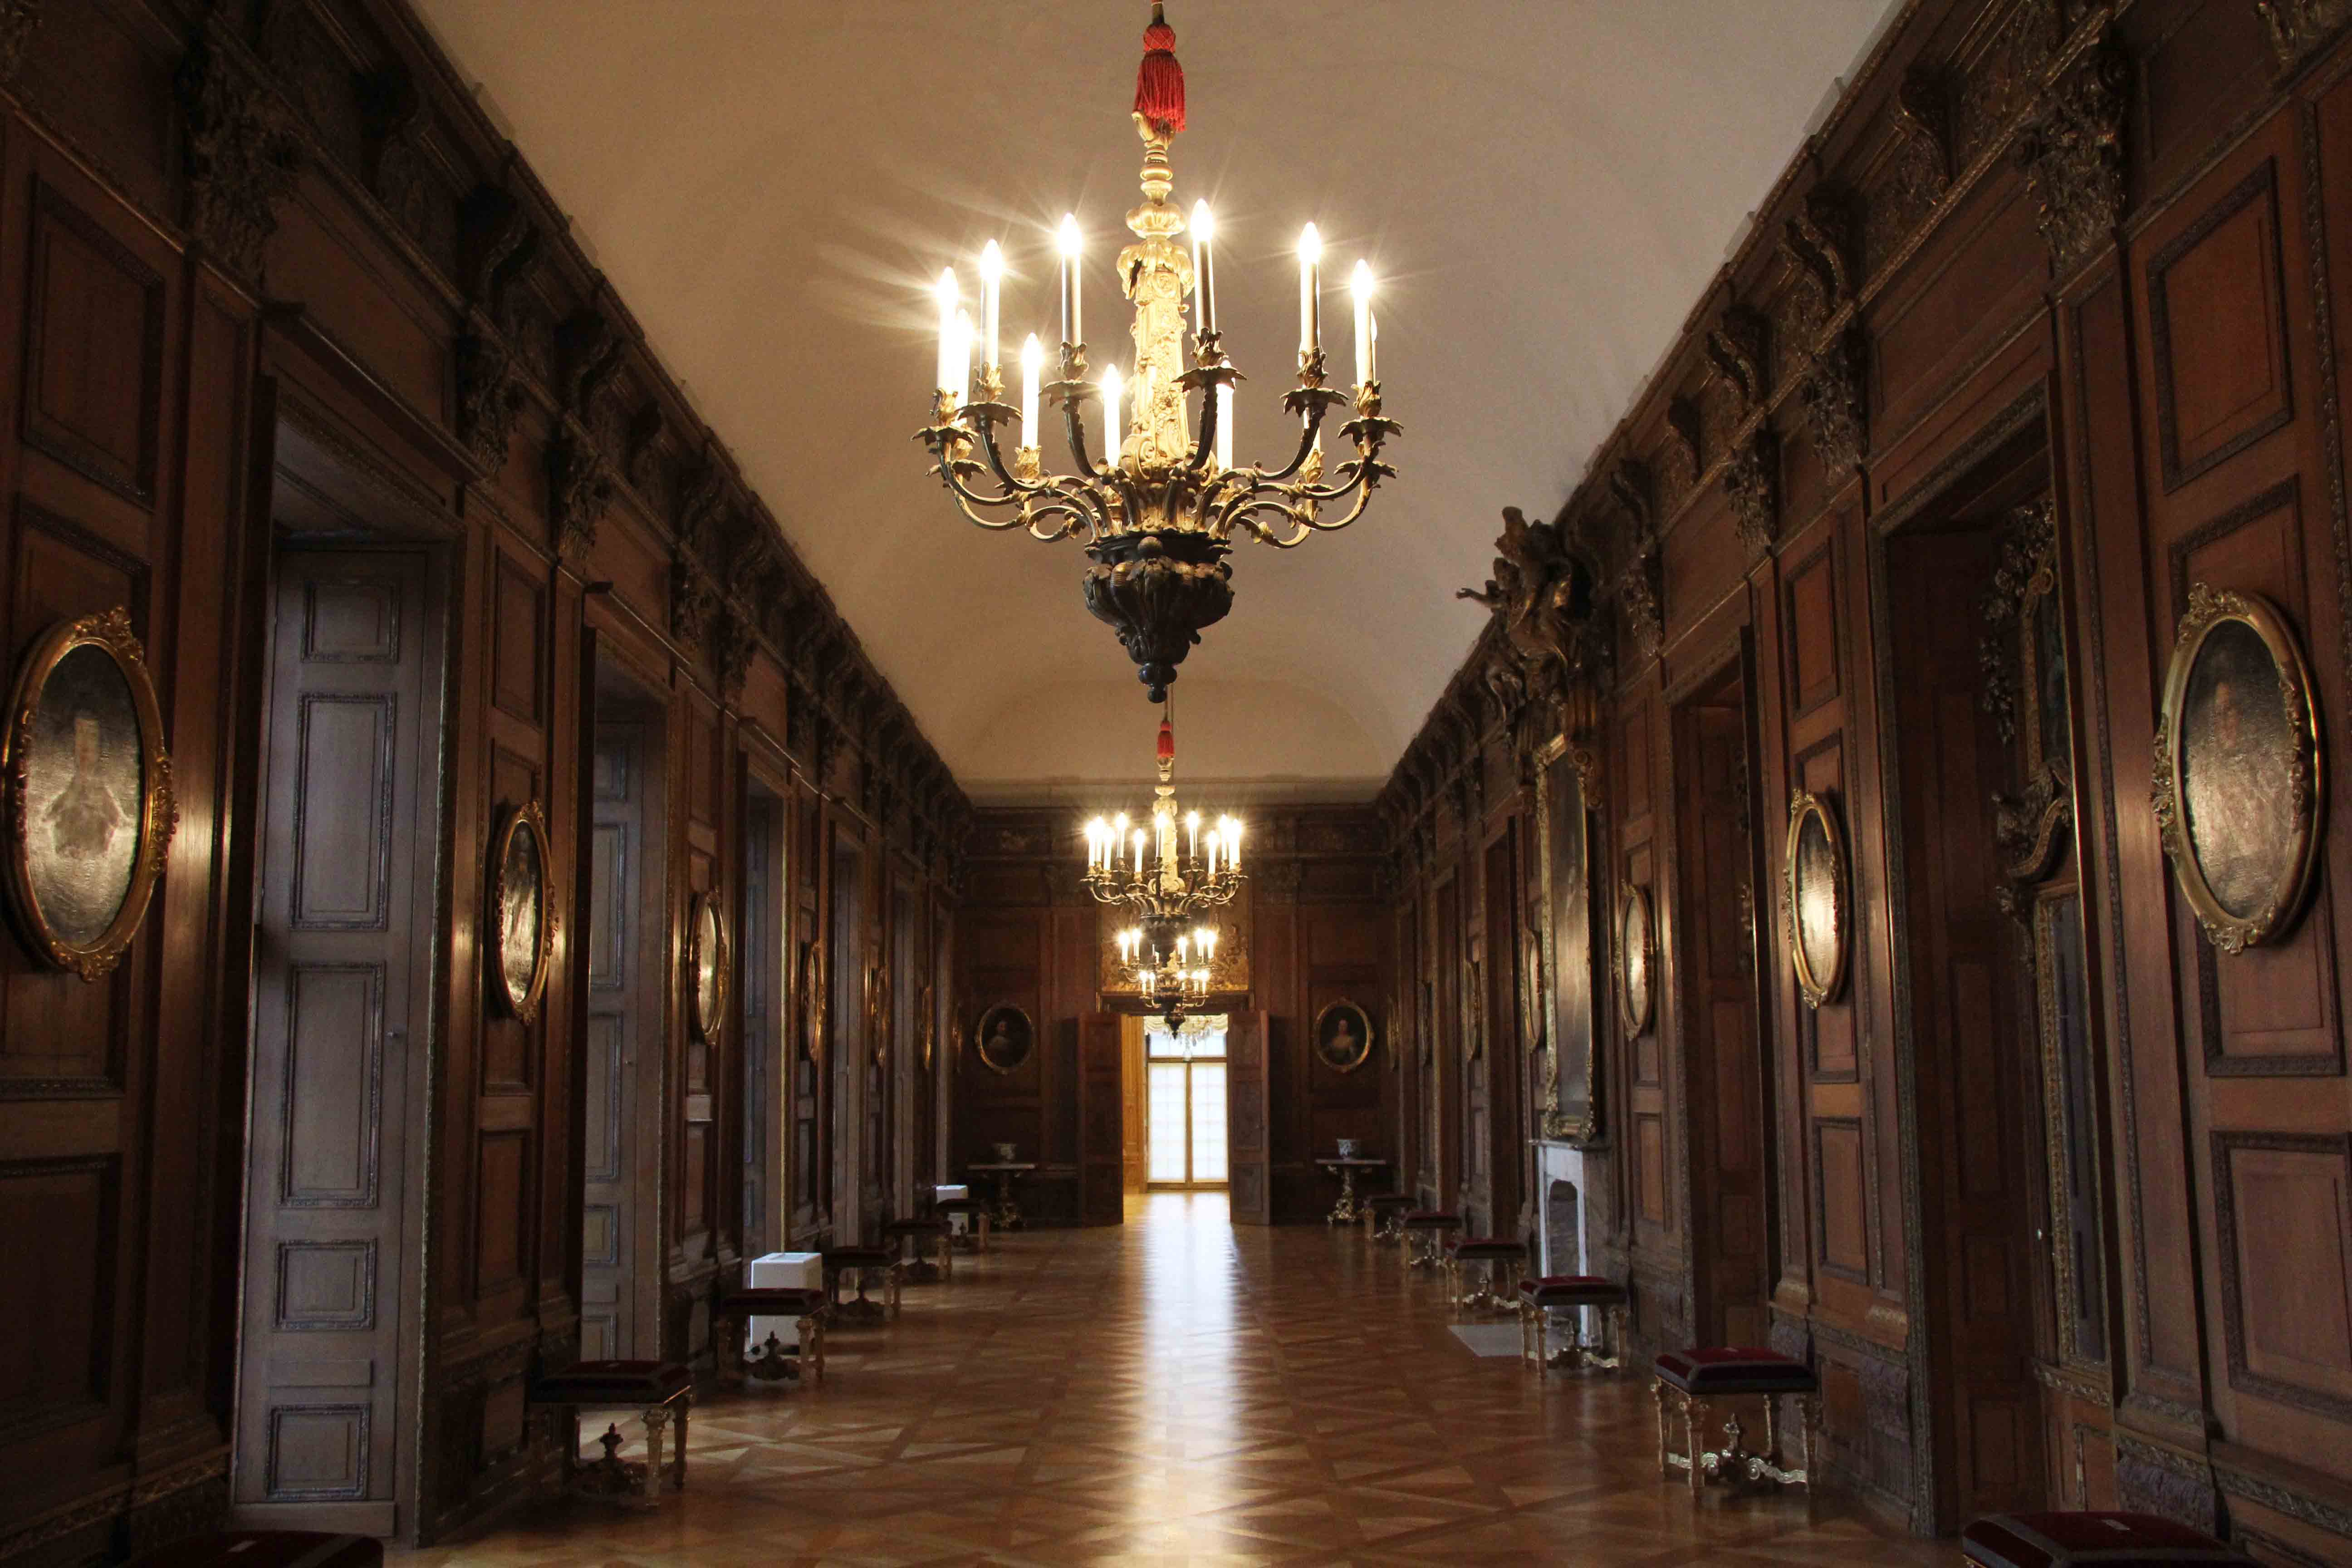 The Oak Gallery at Schloss Charlottenburg in Berlin